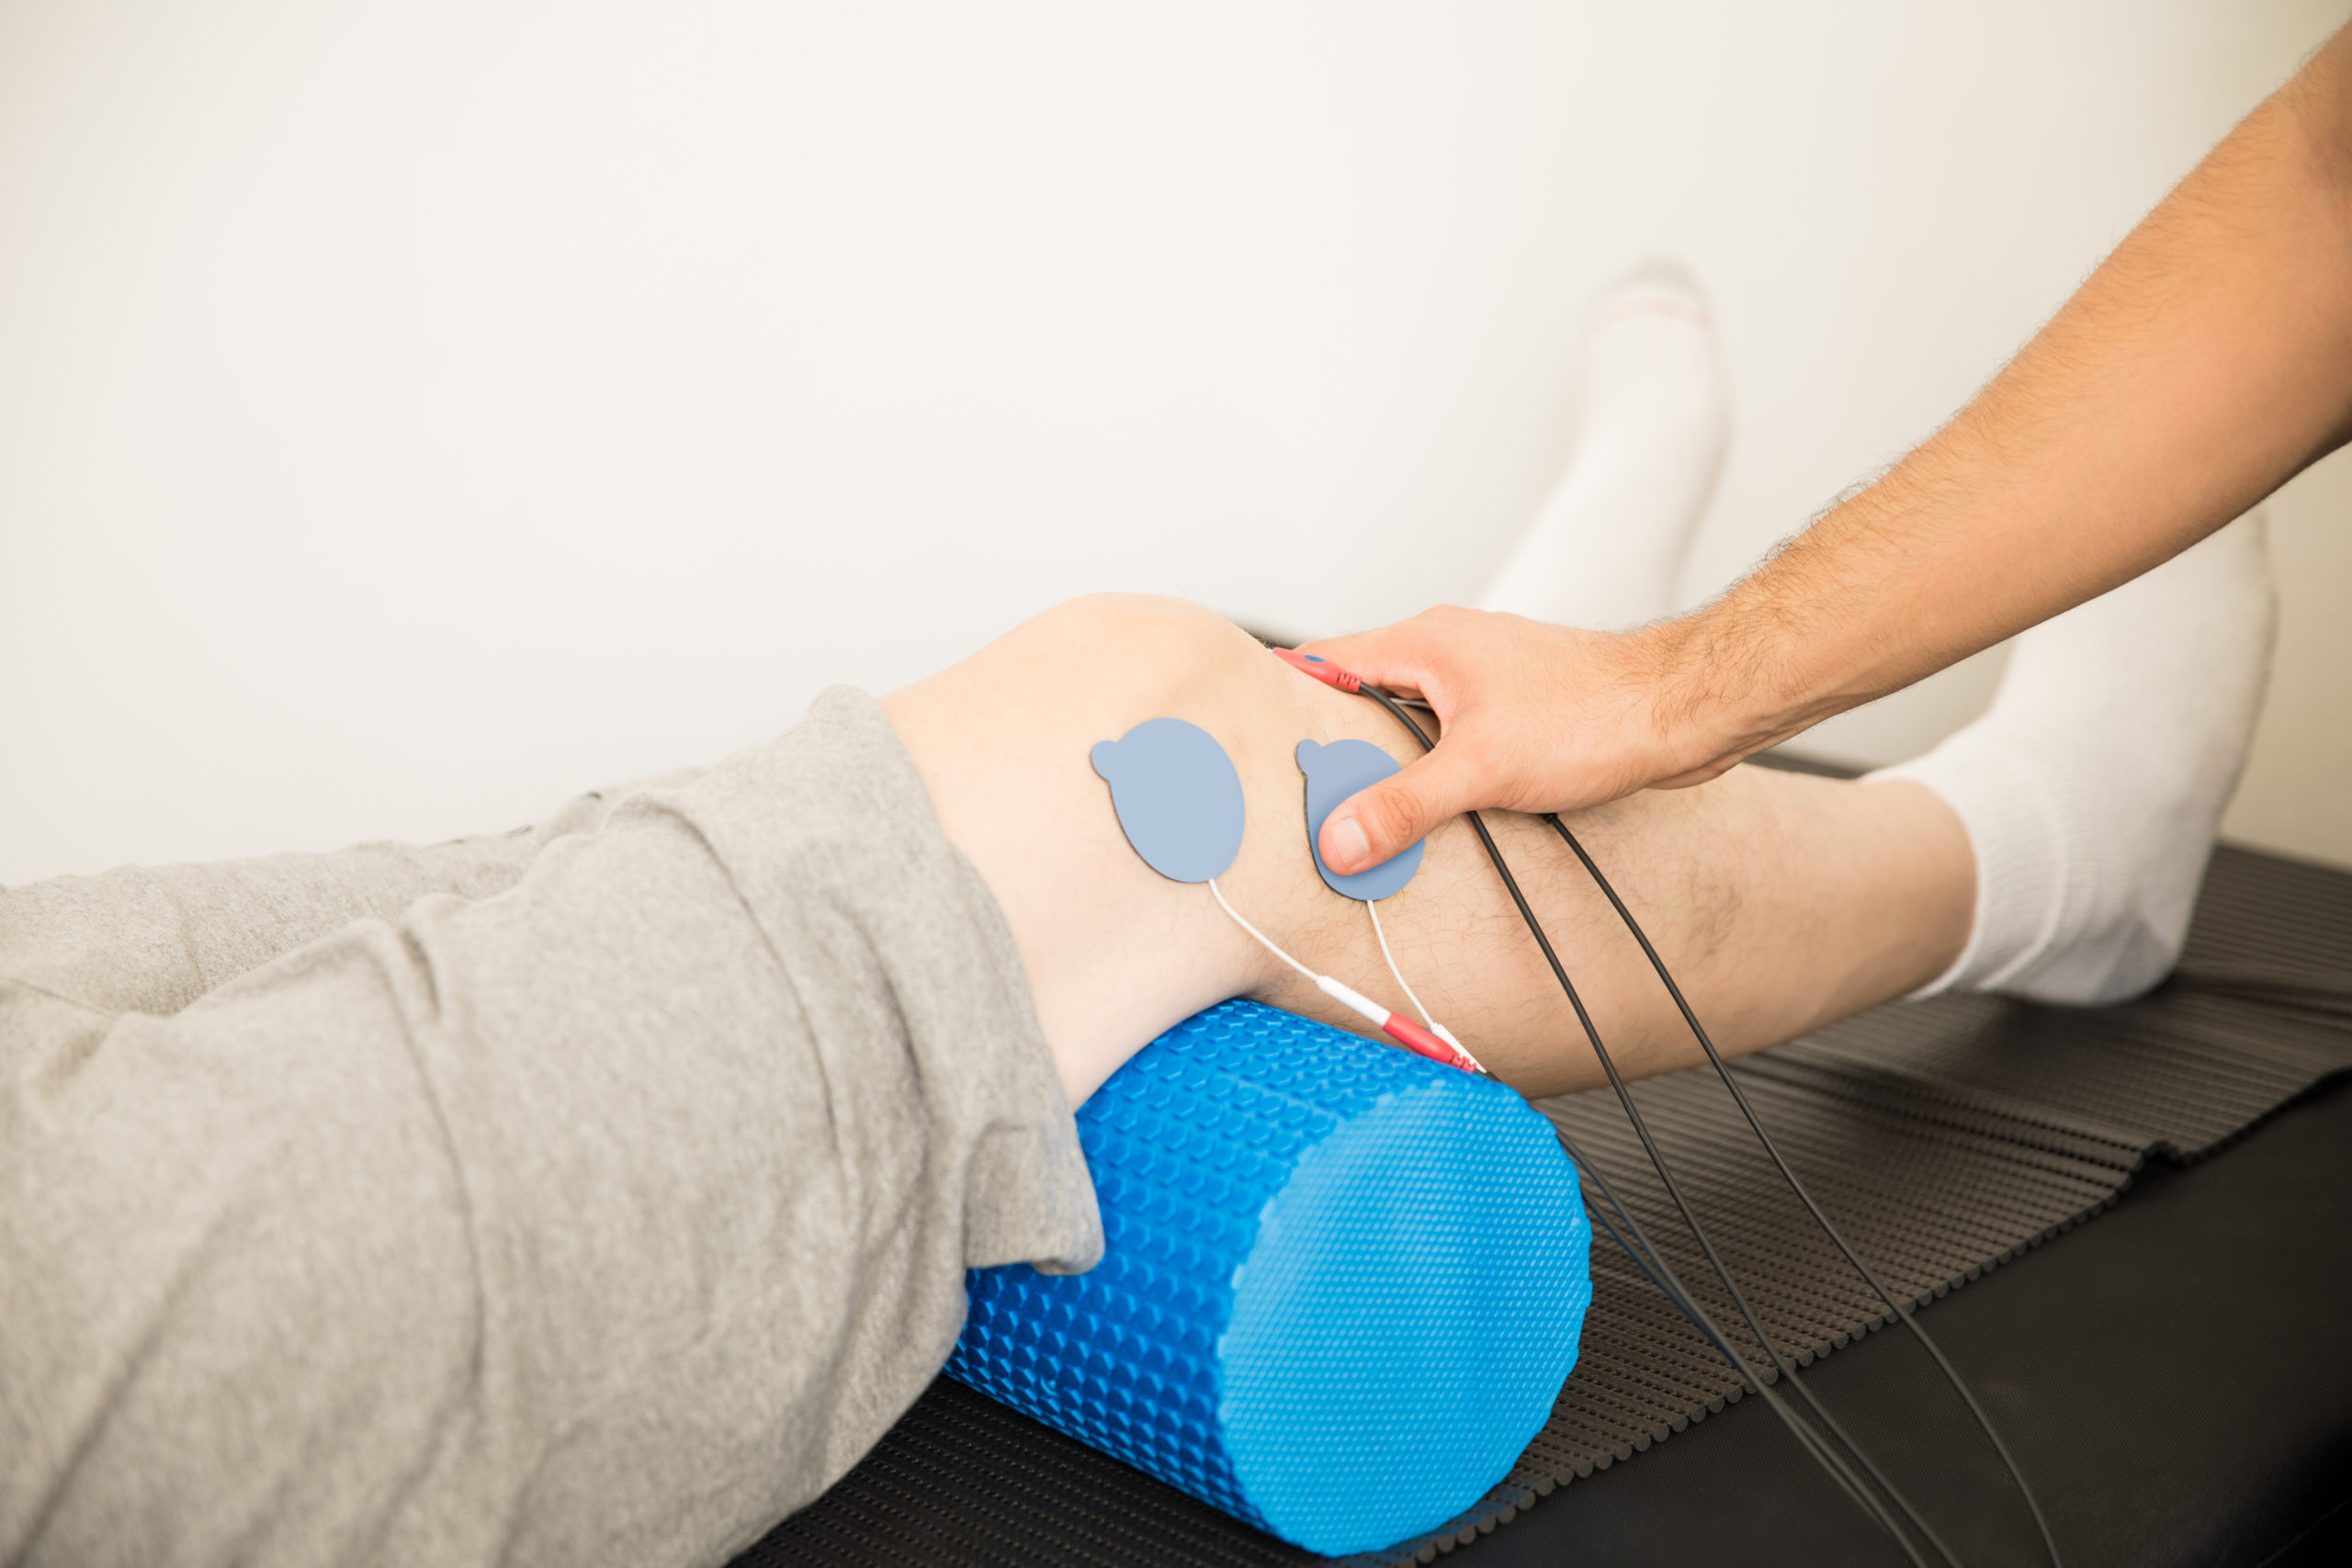 Electrotherapy treatment for a knee injury